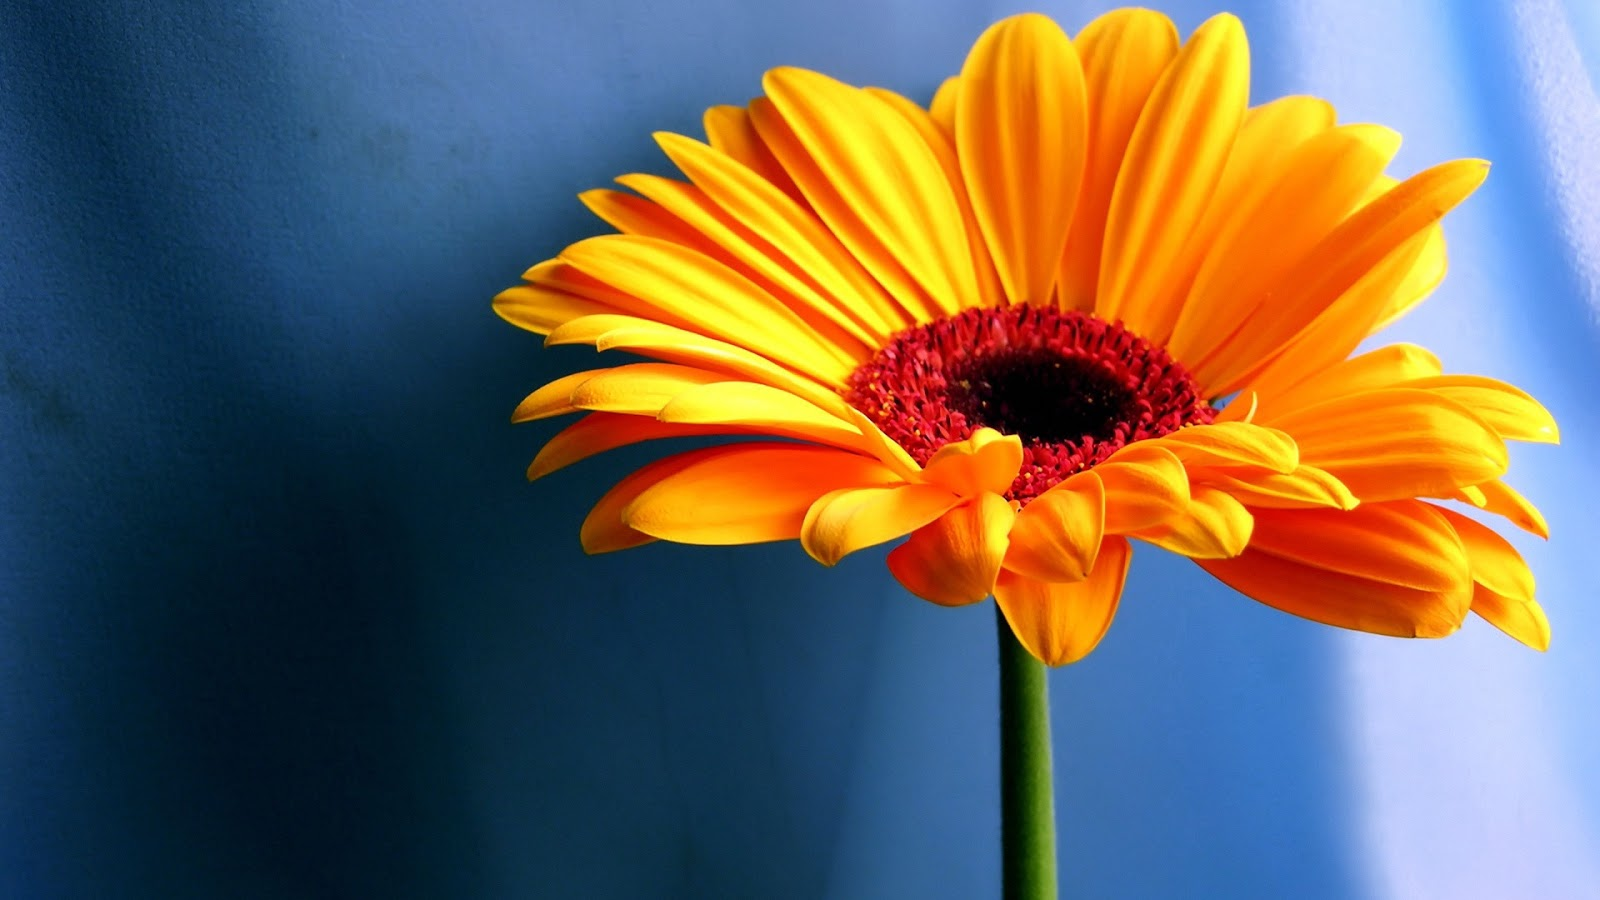 yellow color flower images All free download  - yellow color flowers wallpapers